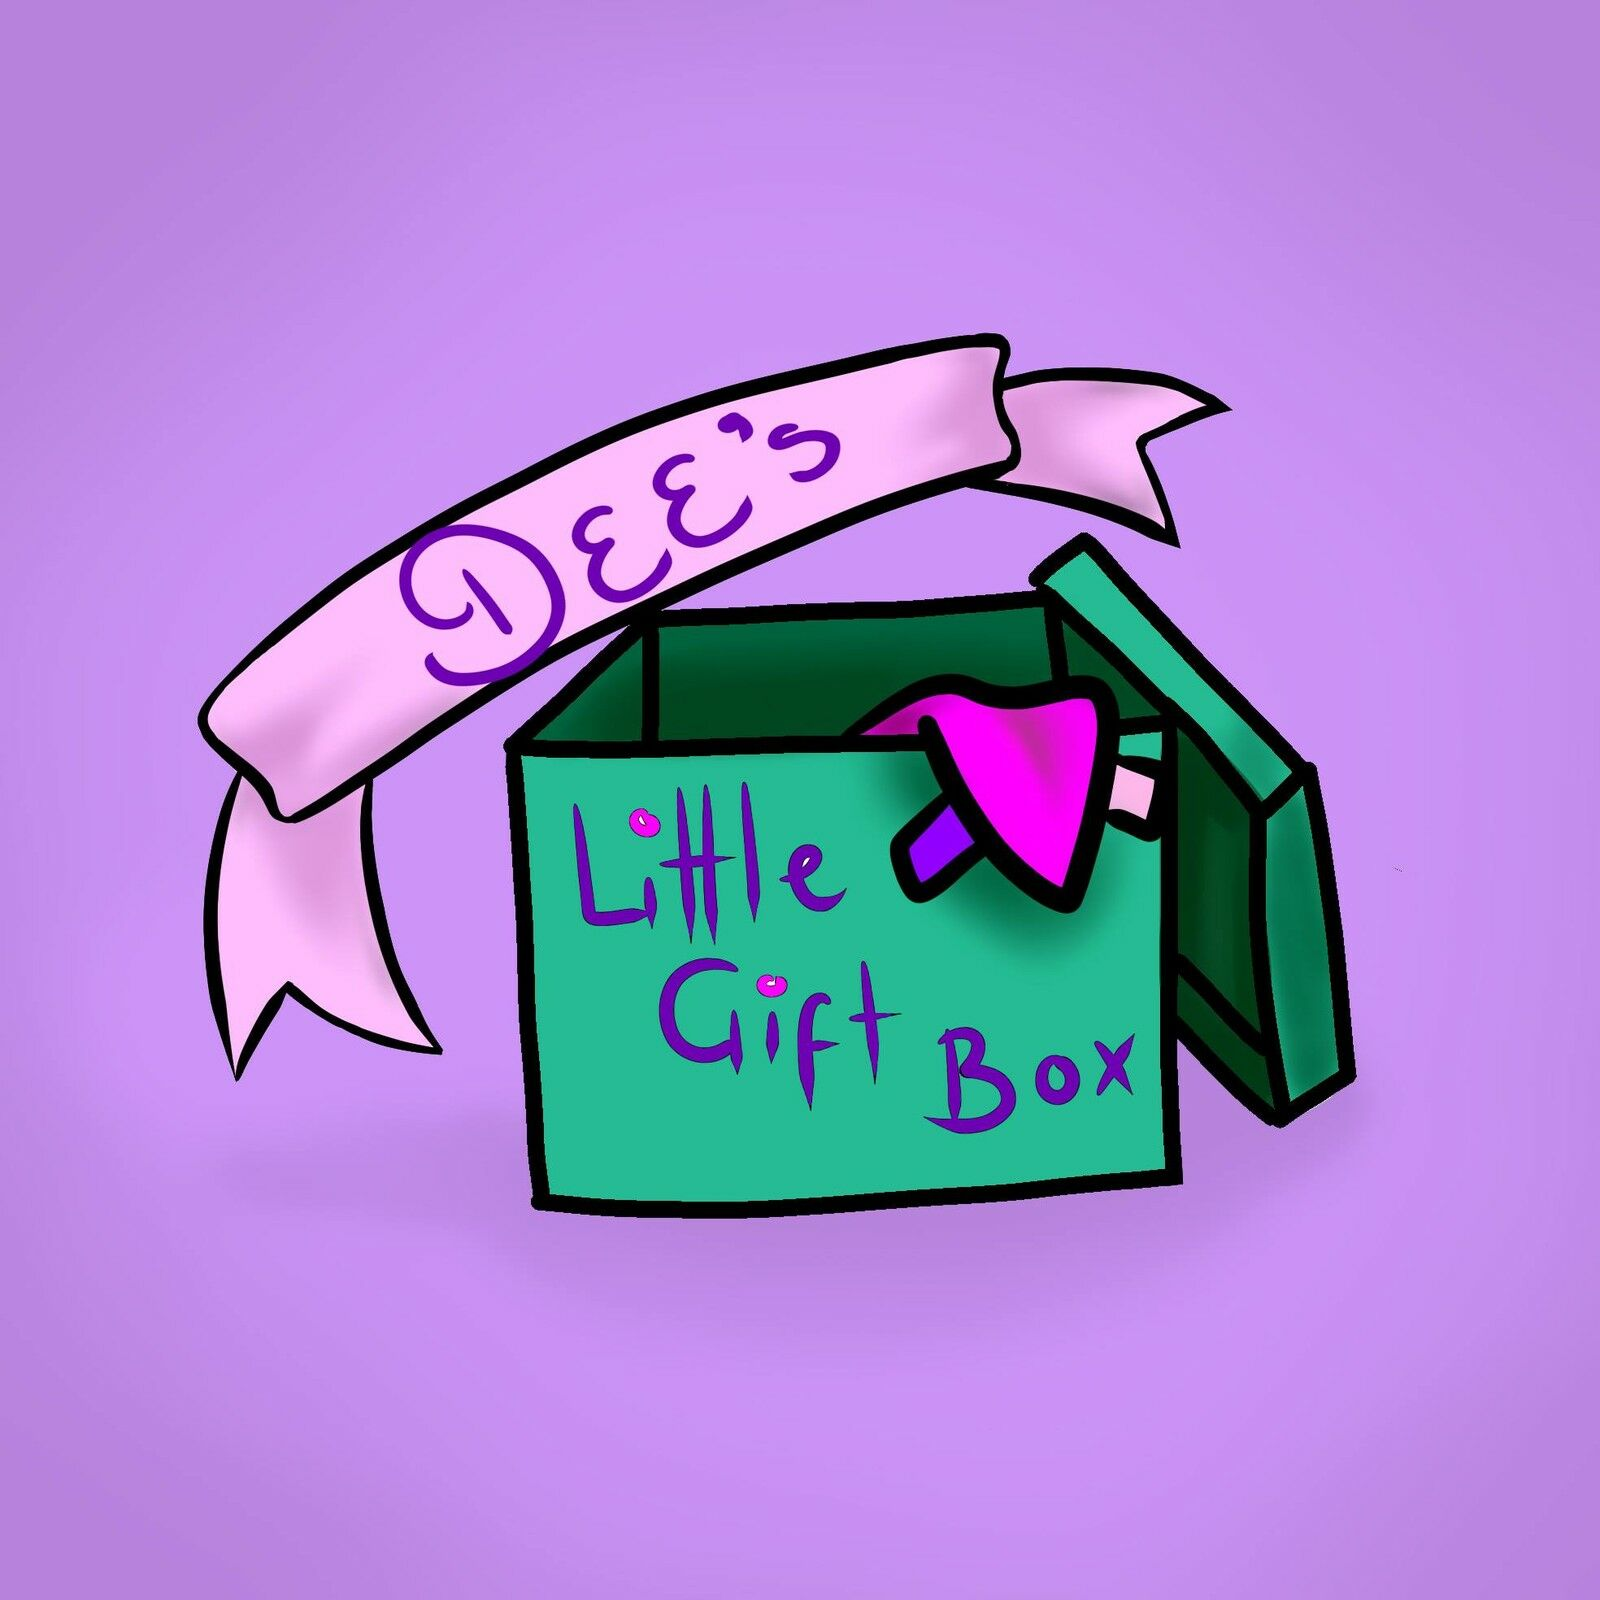 Dee's Little Gift Box